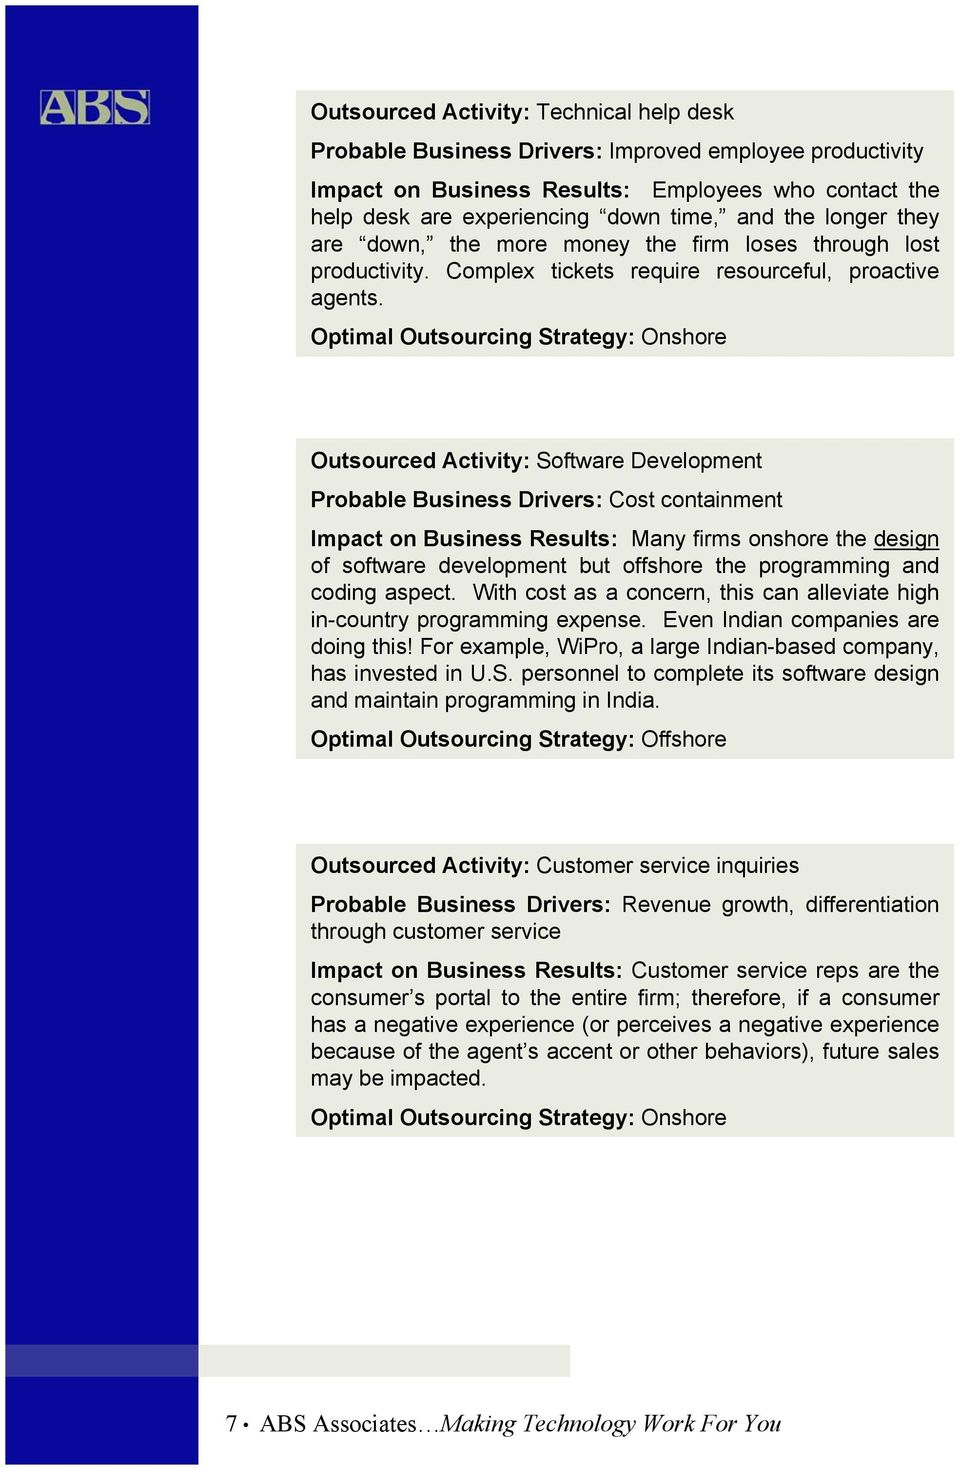 Optimal Outsourcing Strategy: Onshore Outsourced Activity: Software Development Probable Business Drivers: Cost containment Impact on Business Results: Many firms onshore the design of software